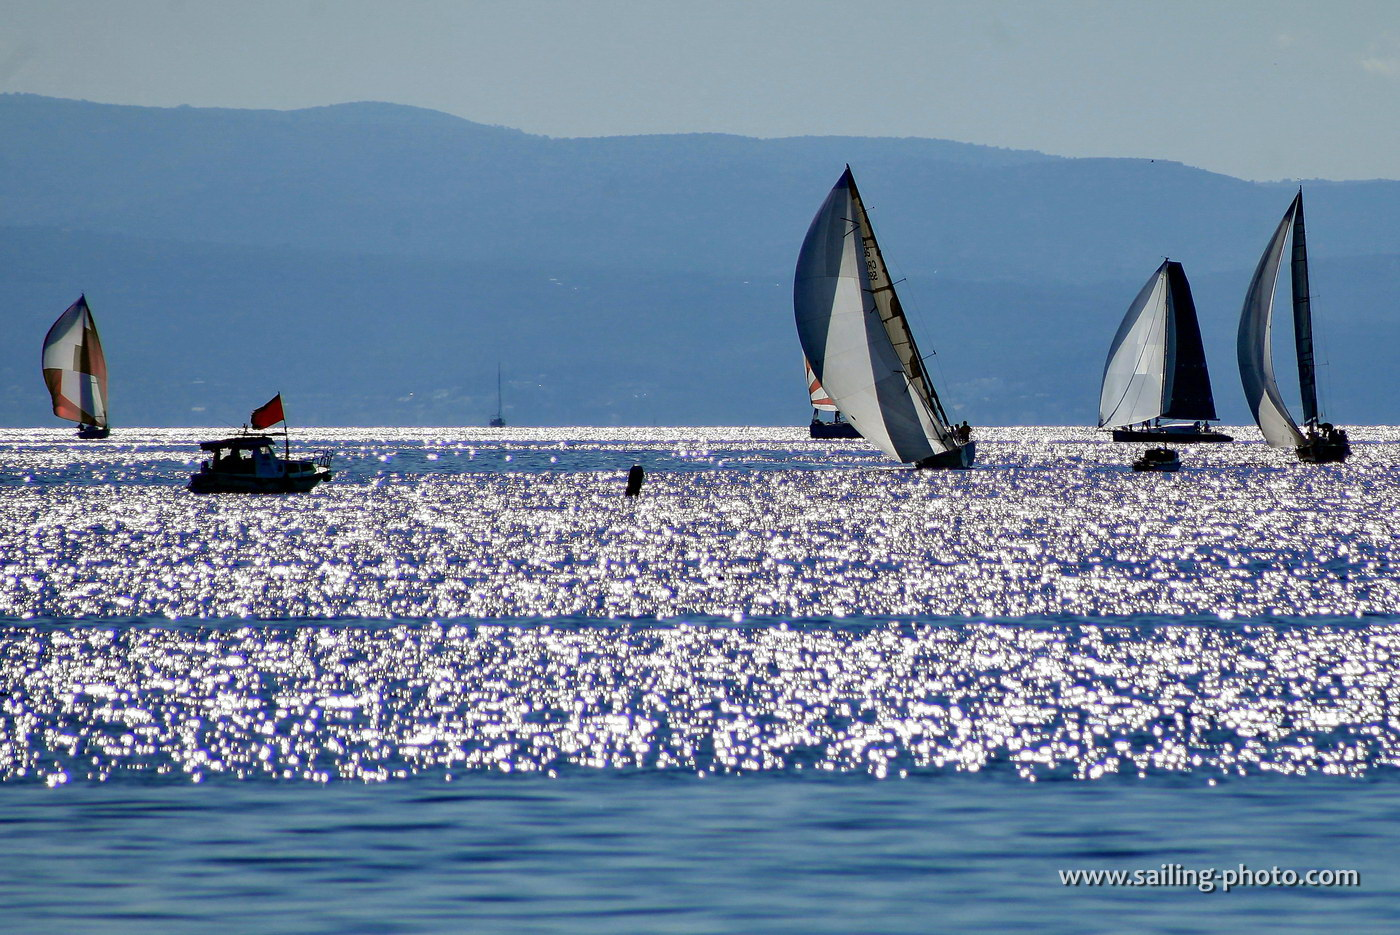 9. Kastelanska regatta, JK Giricic, October 2019